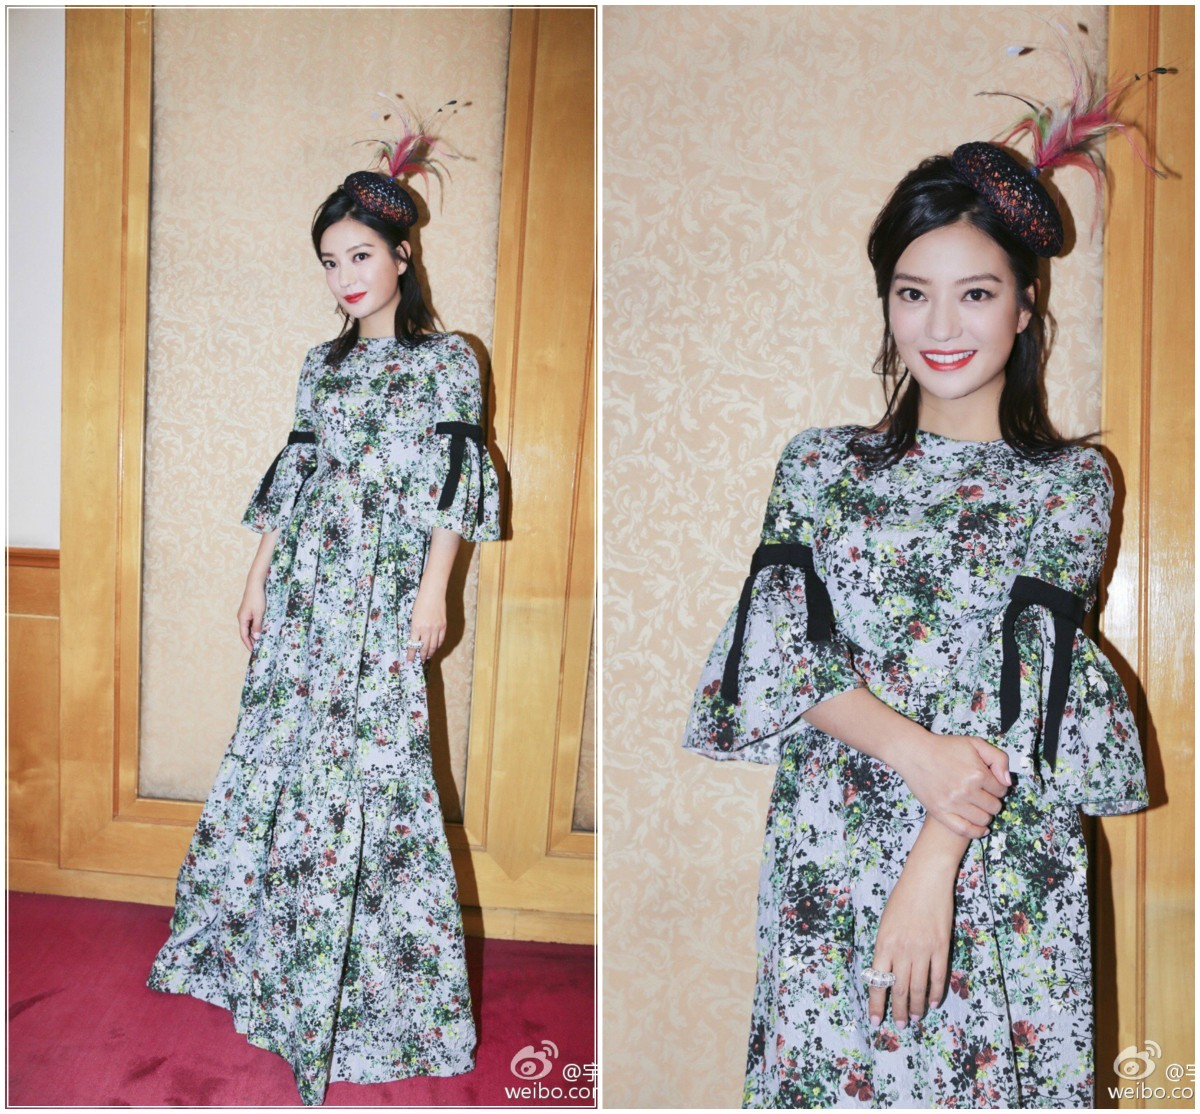 Designer Look for Less: Vicki Zhao in Erdem's Bell-Sleeve Blue Floral Maxi